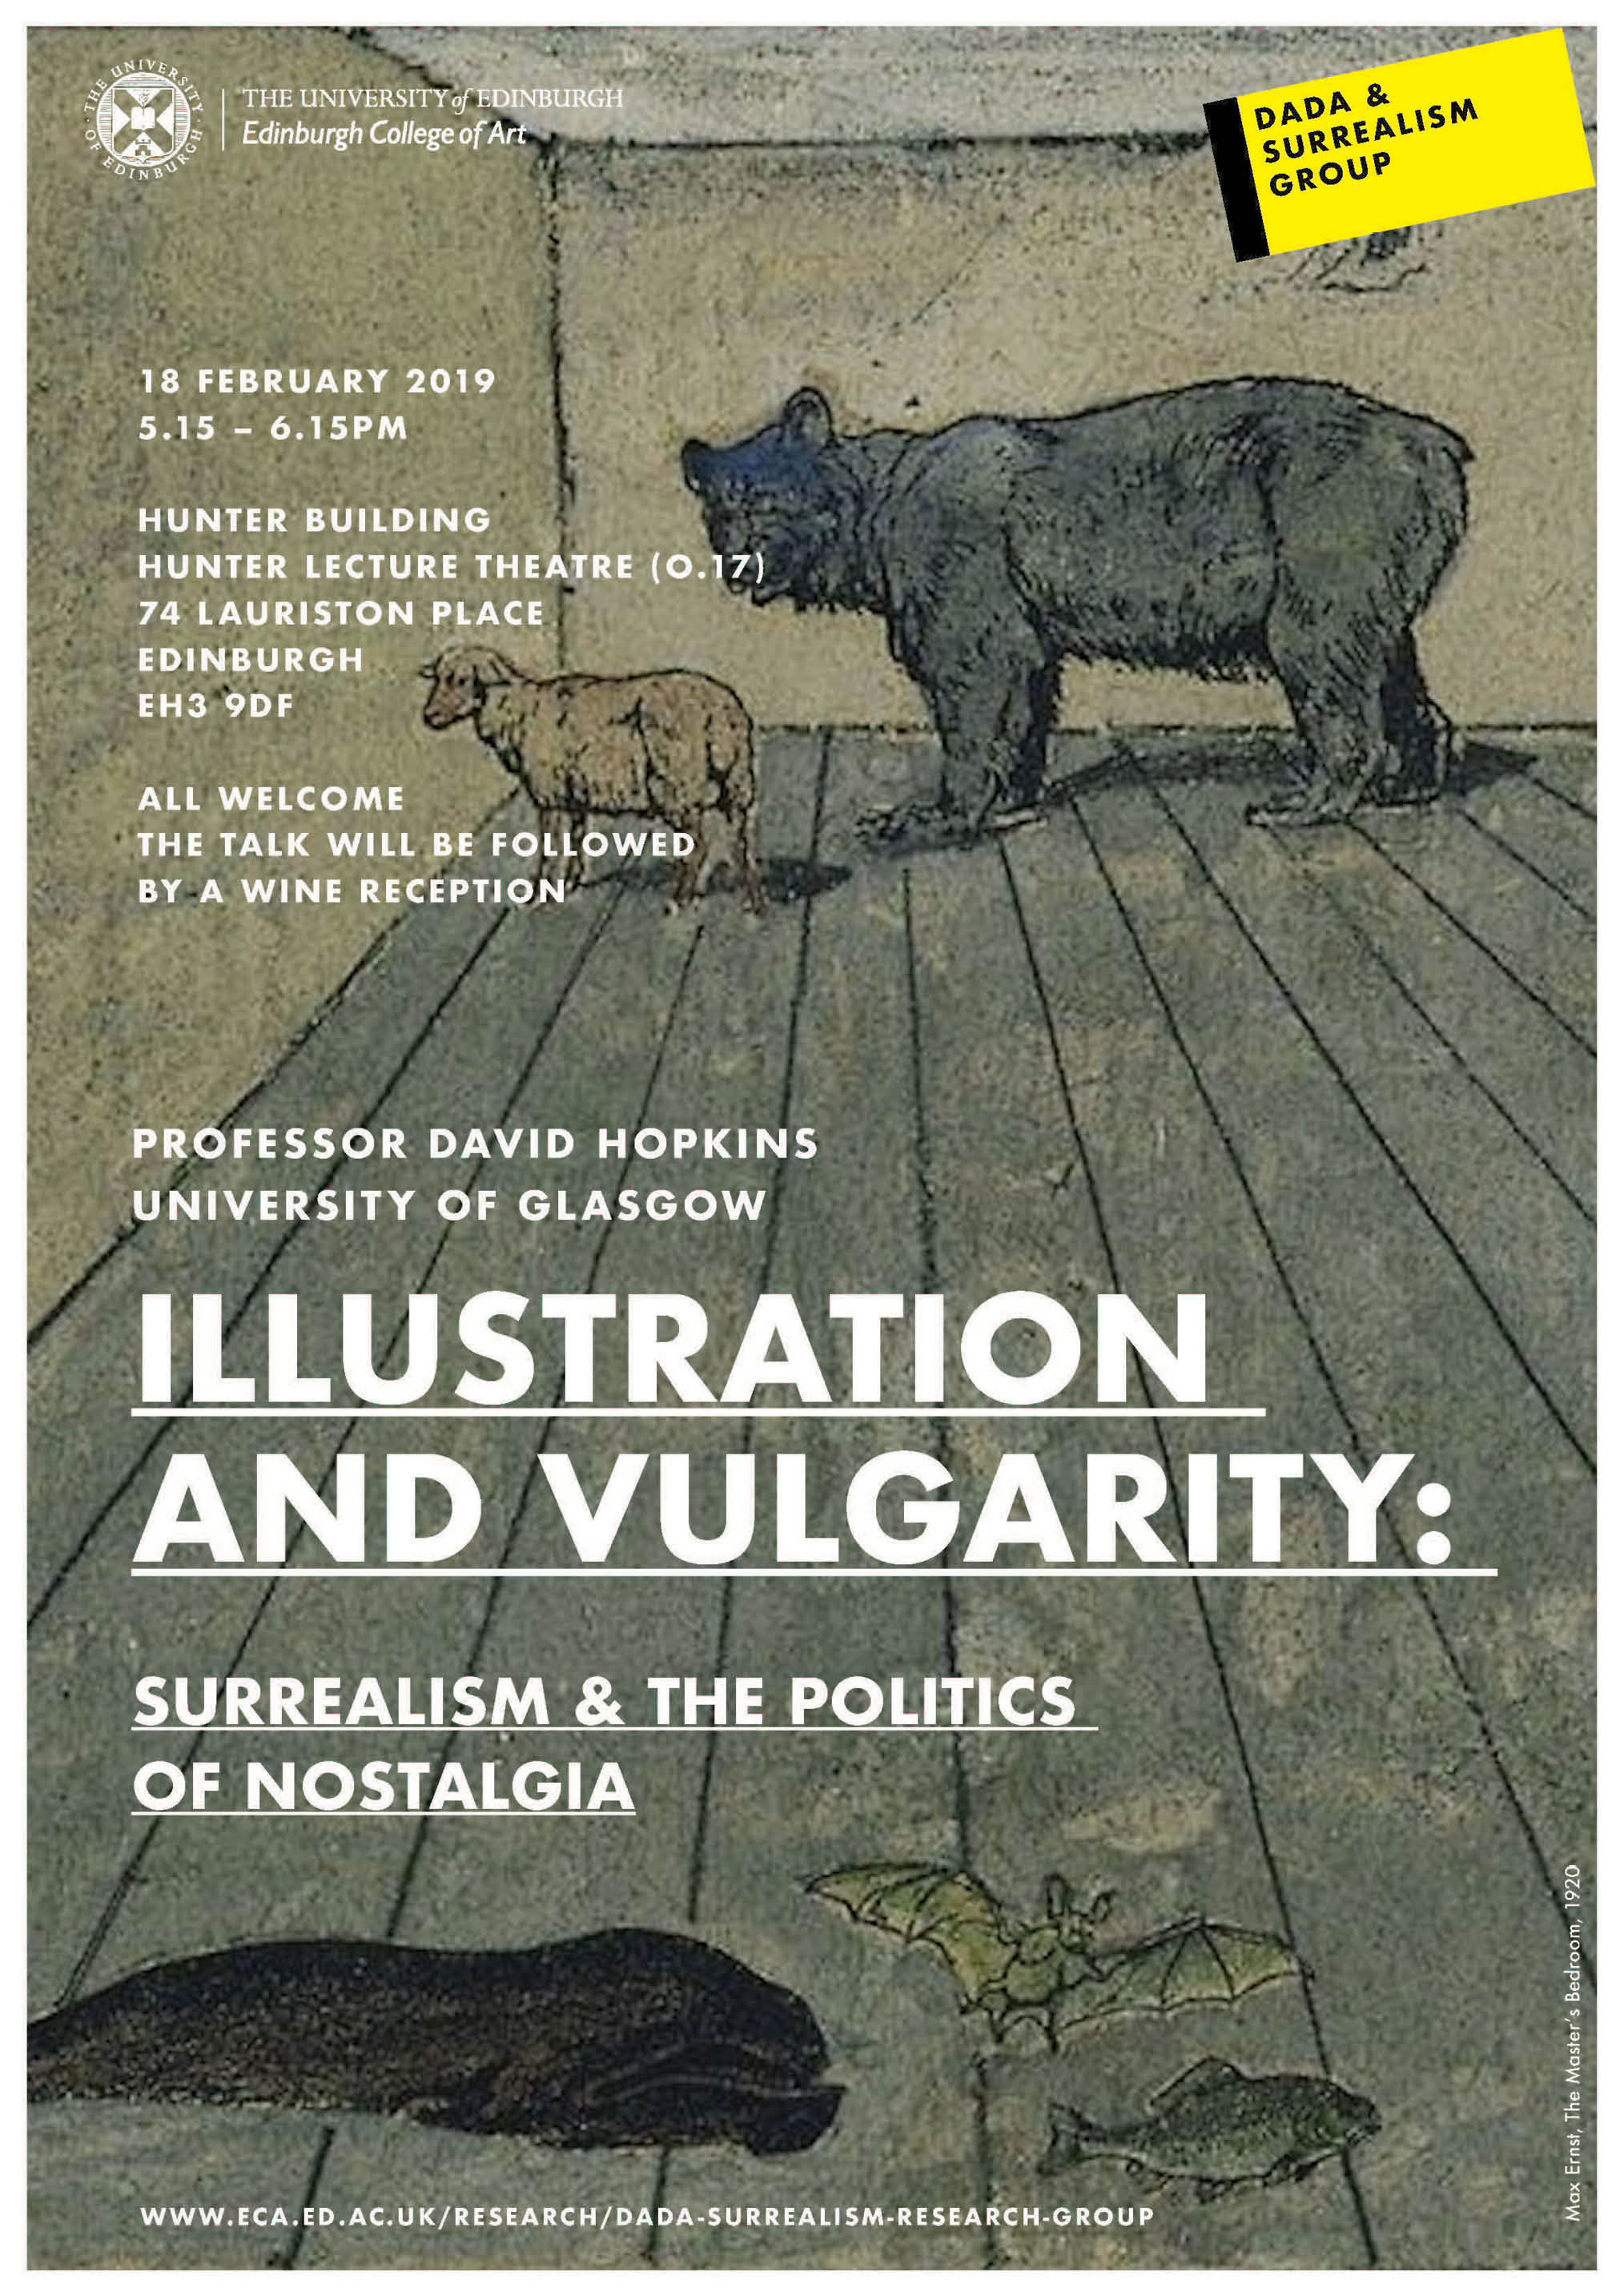 Illustration and Vulgarity: Surrealism and the Politics of Nostalgia